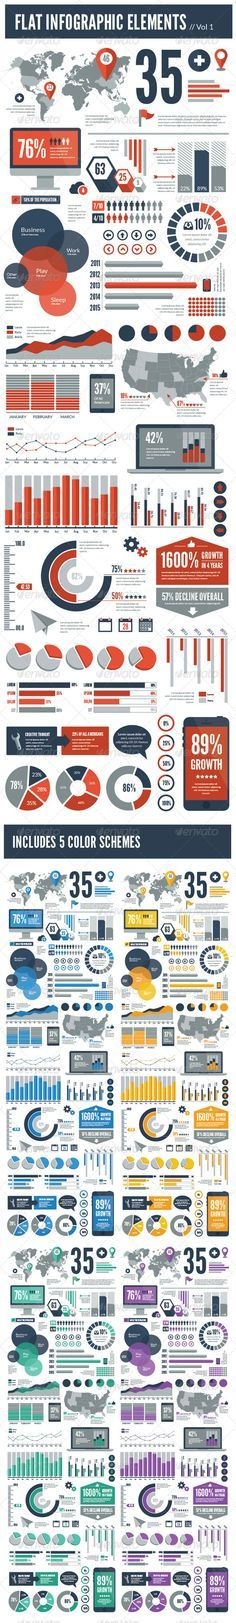 Flat Vector Infographic Elements - Infographics